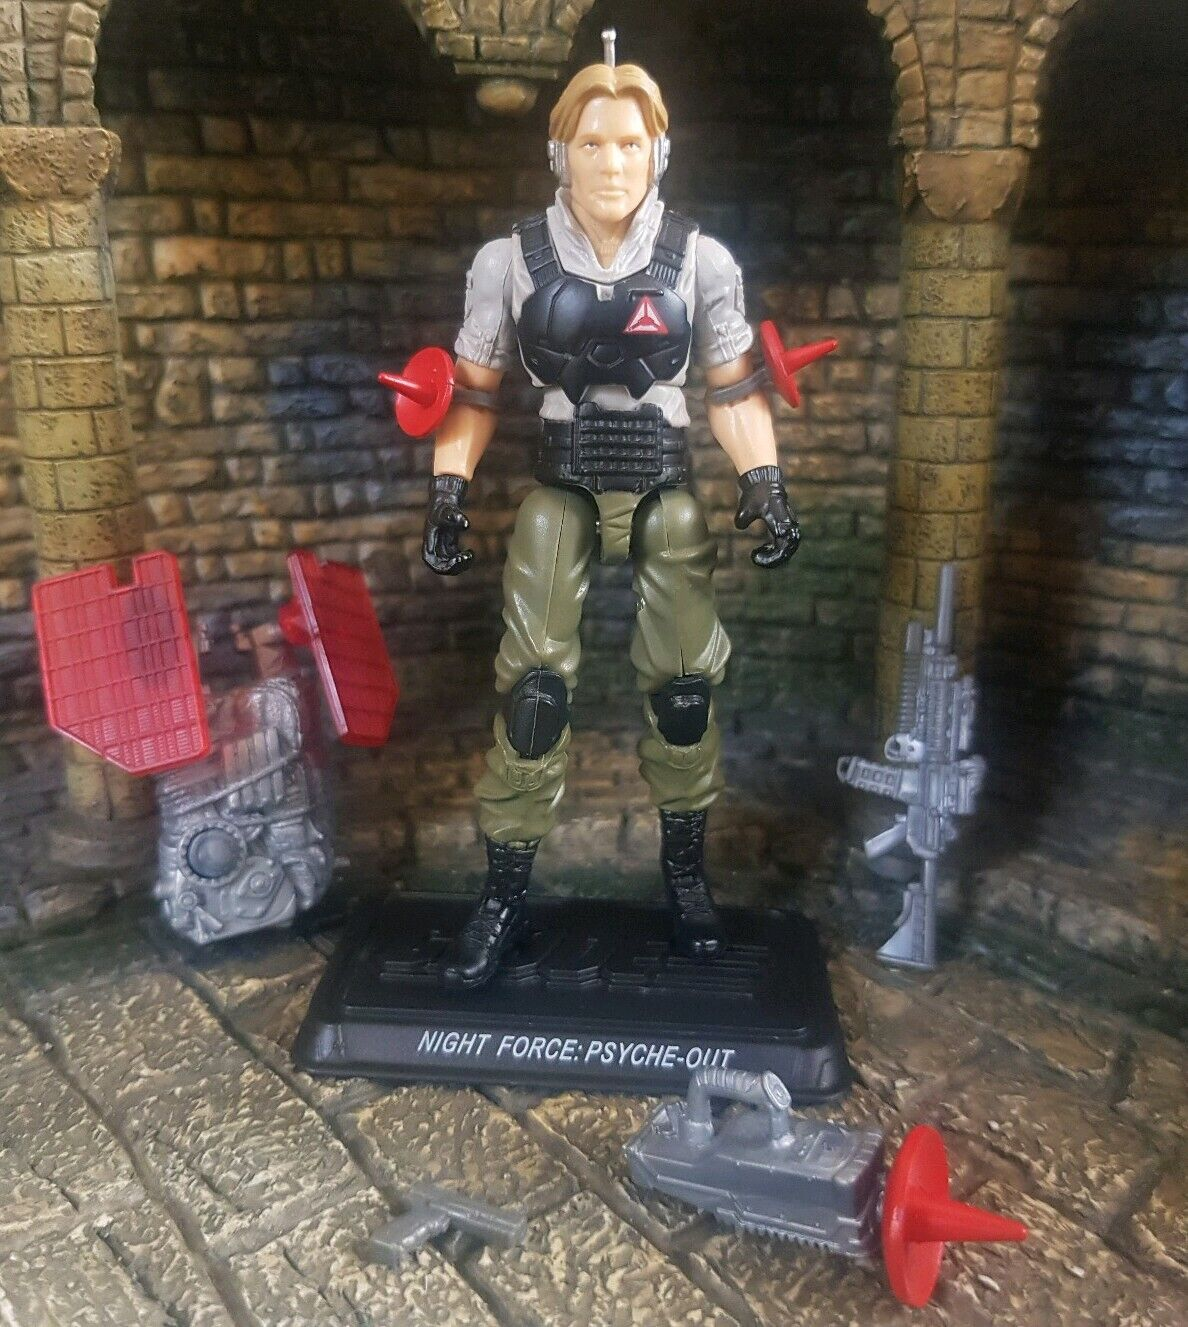 Action Force GI Joe Nocturnal Fire Joecon Exclusive Psyche Out by Hasbro